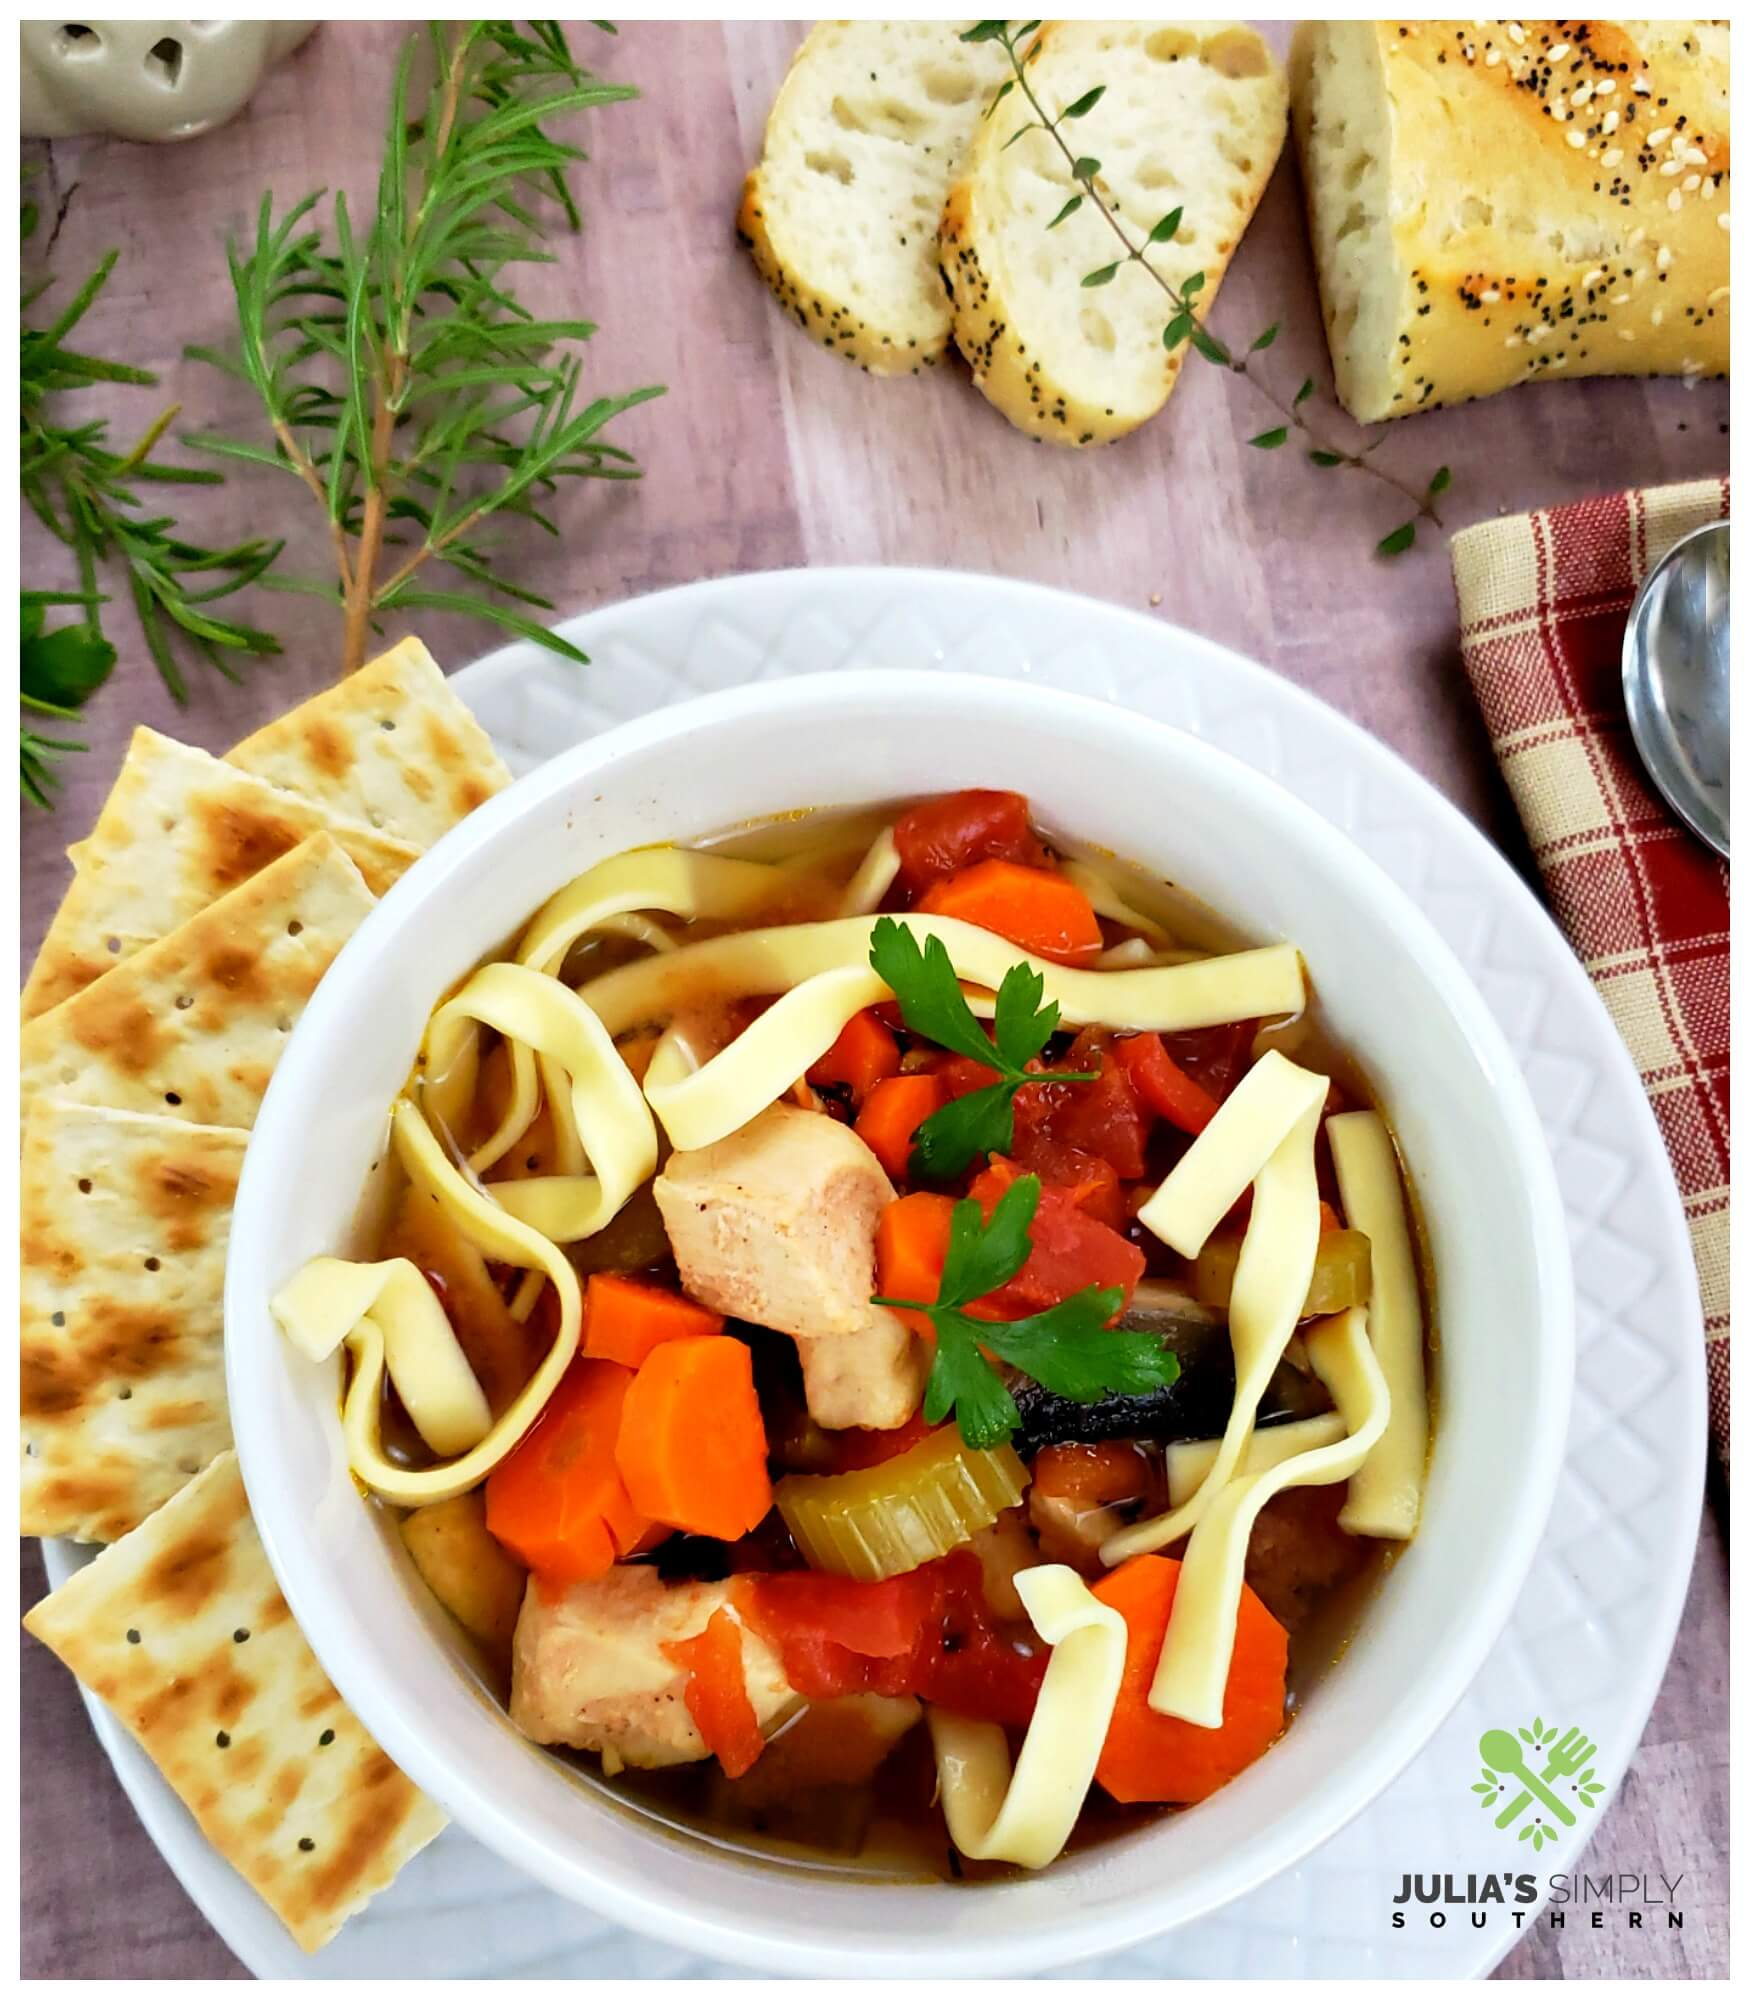 Grandmas Slow Cooker Chicken Noodle Soup recipe